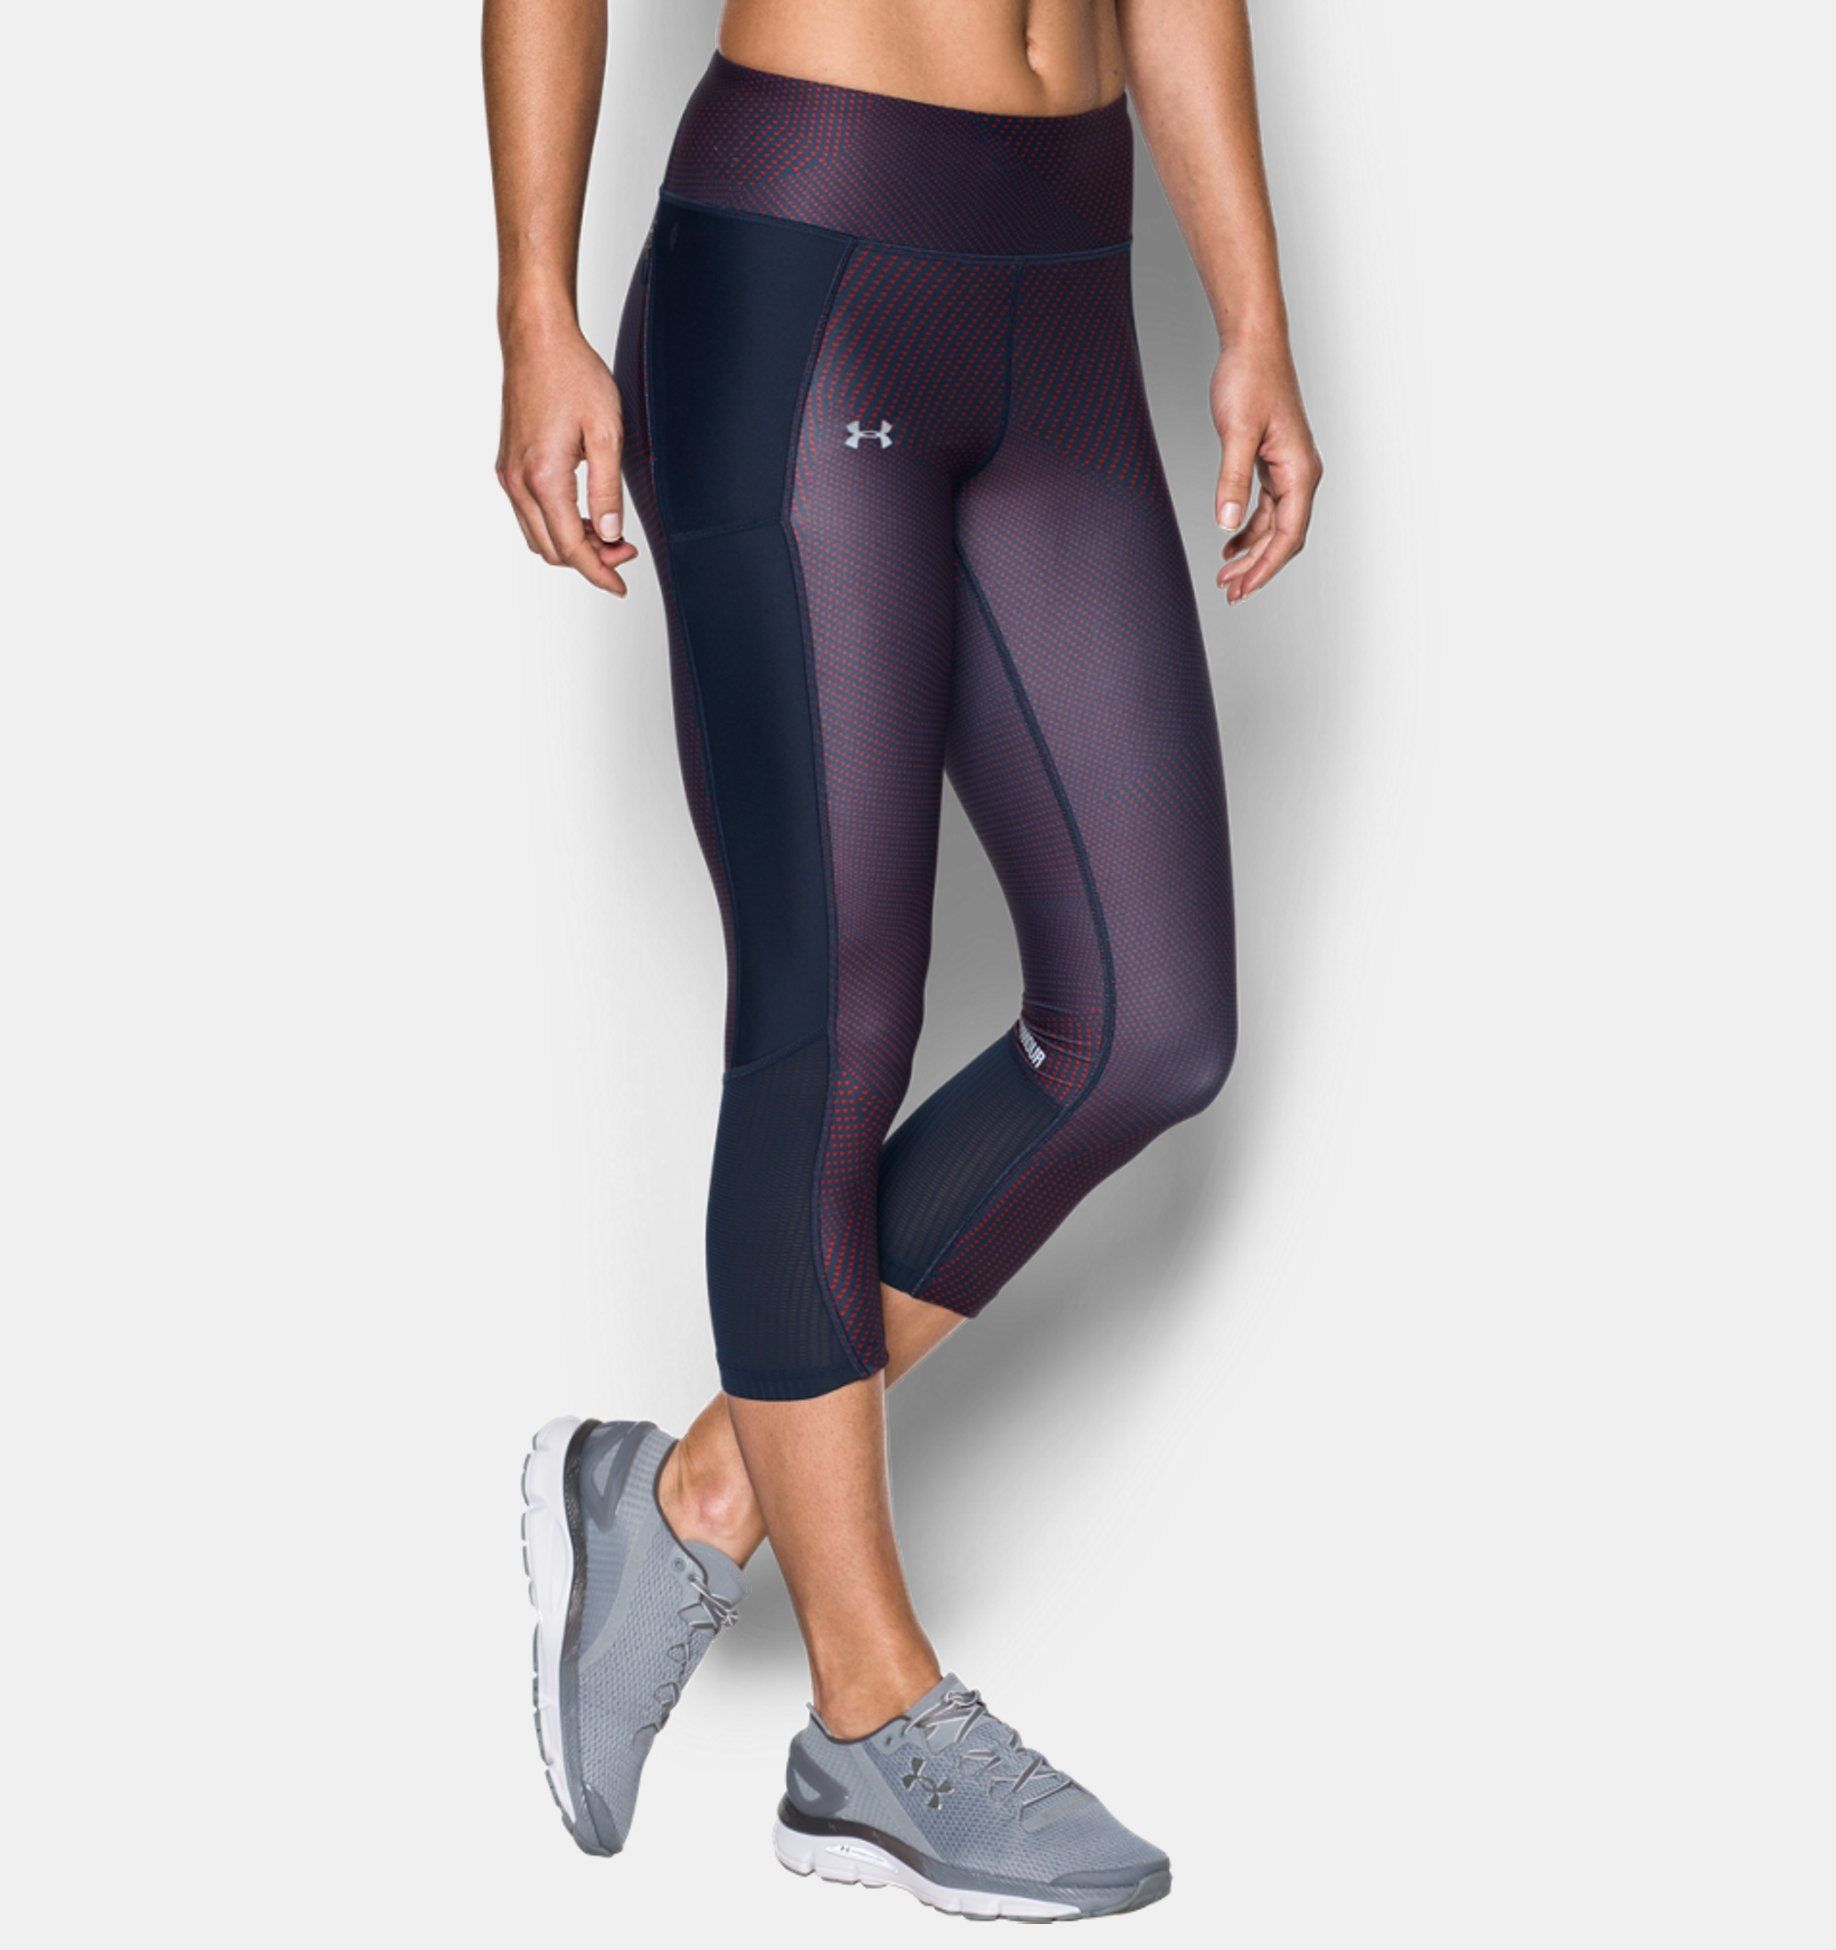 d59517adefb24 Women's UA Fly-By Printed Capris | Under Armour MY | v//w | Capri ...